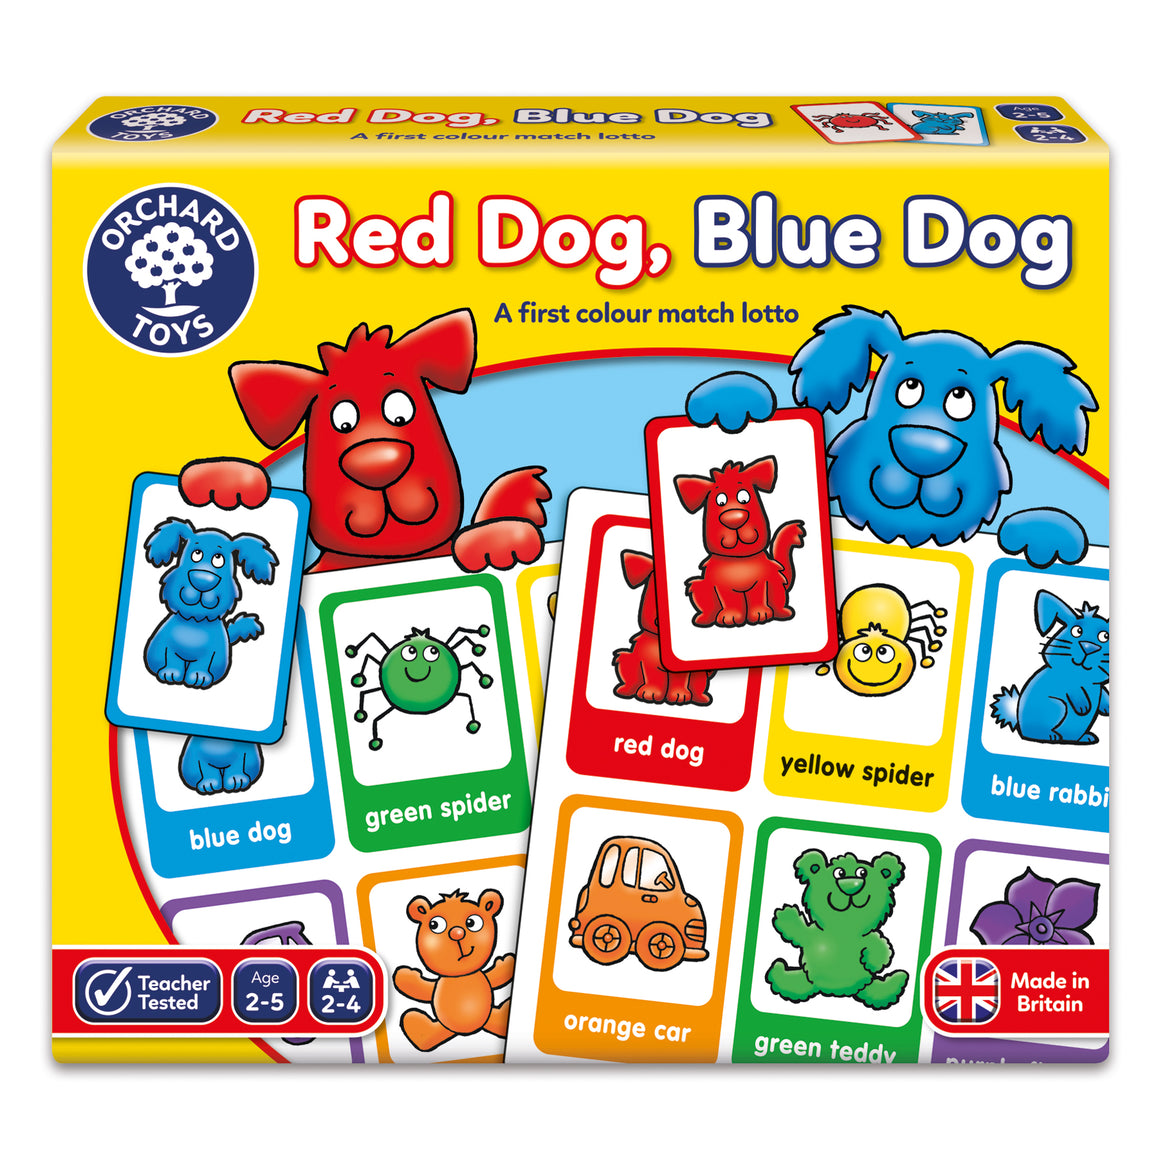 Red Dog, Blue Dog - The Tiny Toy Store